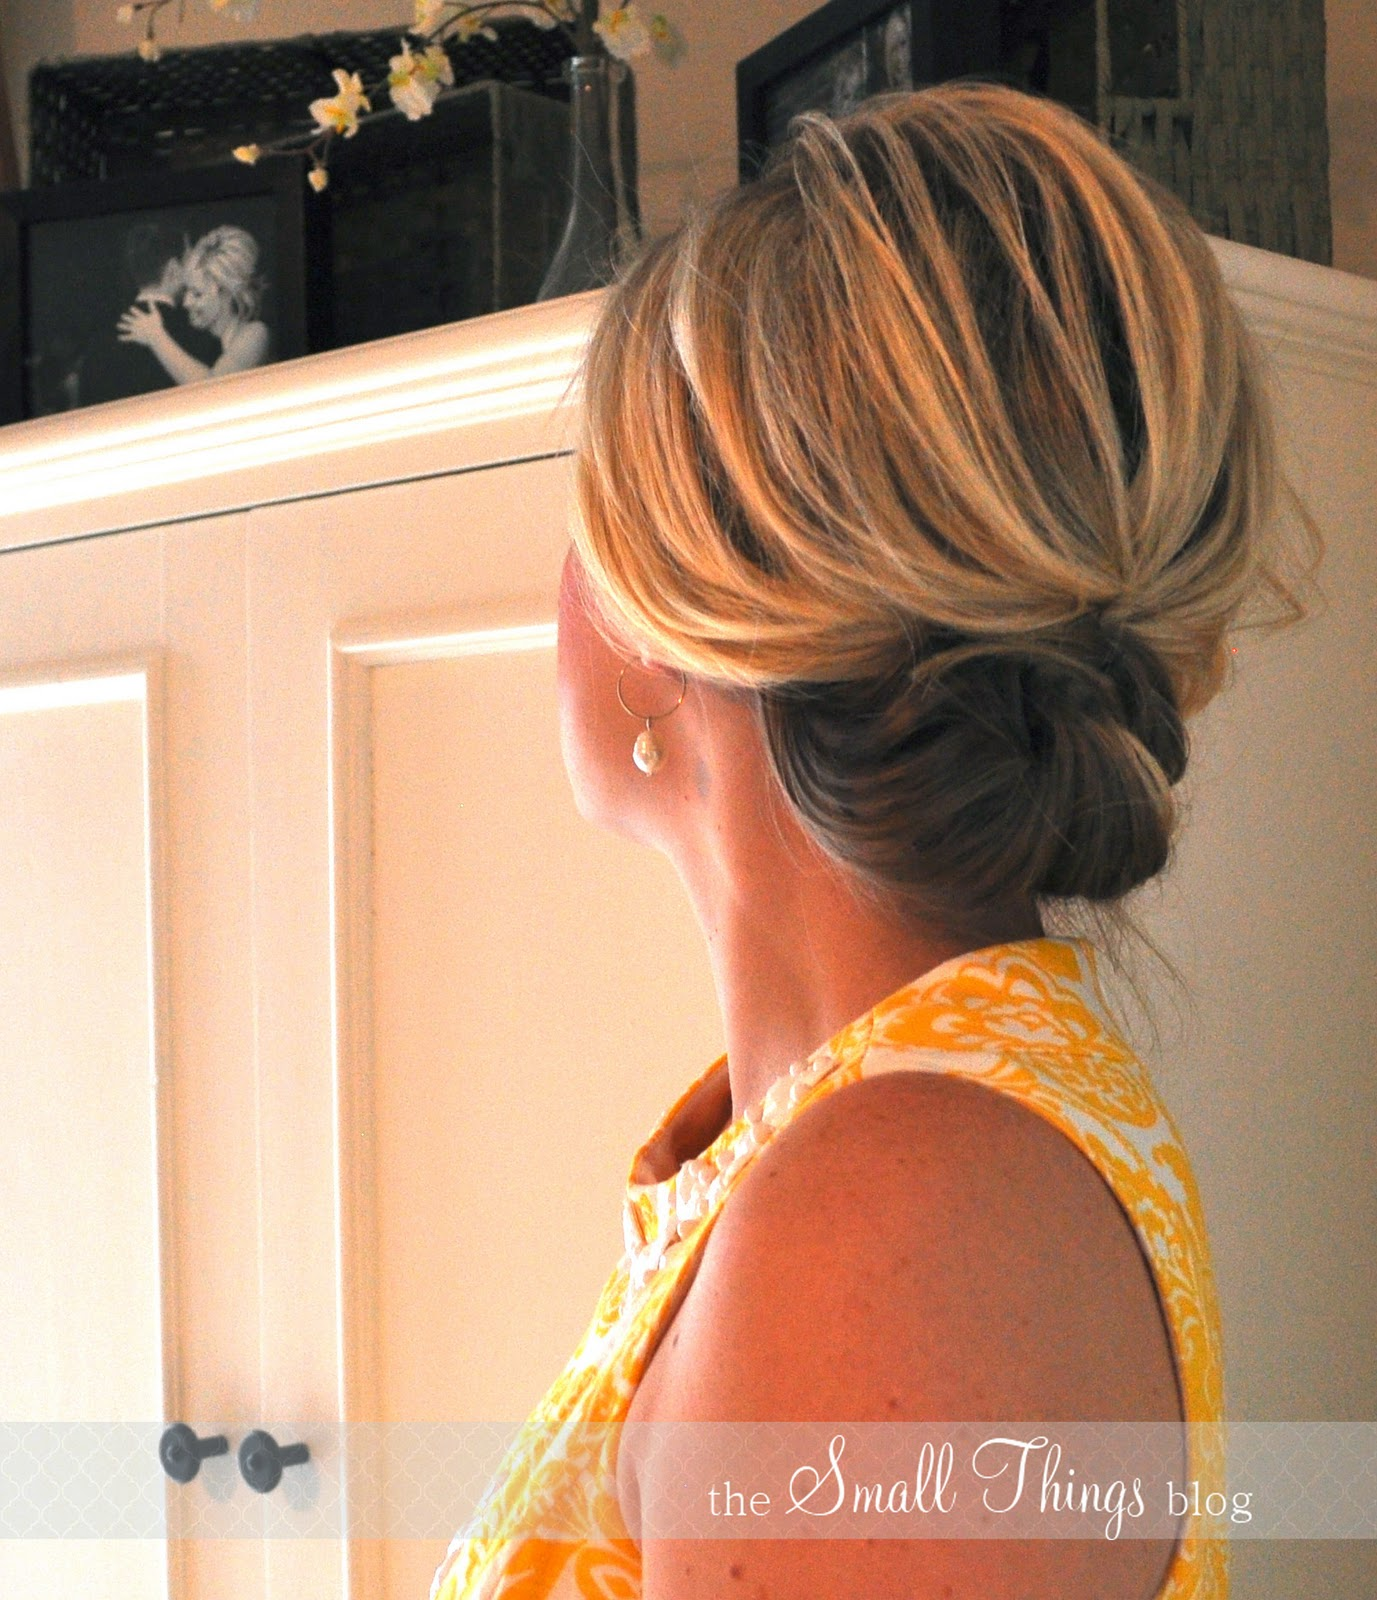 The chic updo the small things blog youll see photos of a cleaner updo and one that i messed up a little bit by rubbing my fingers over it pmusecretfo Gallery